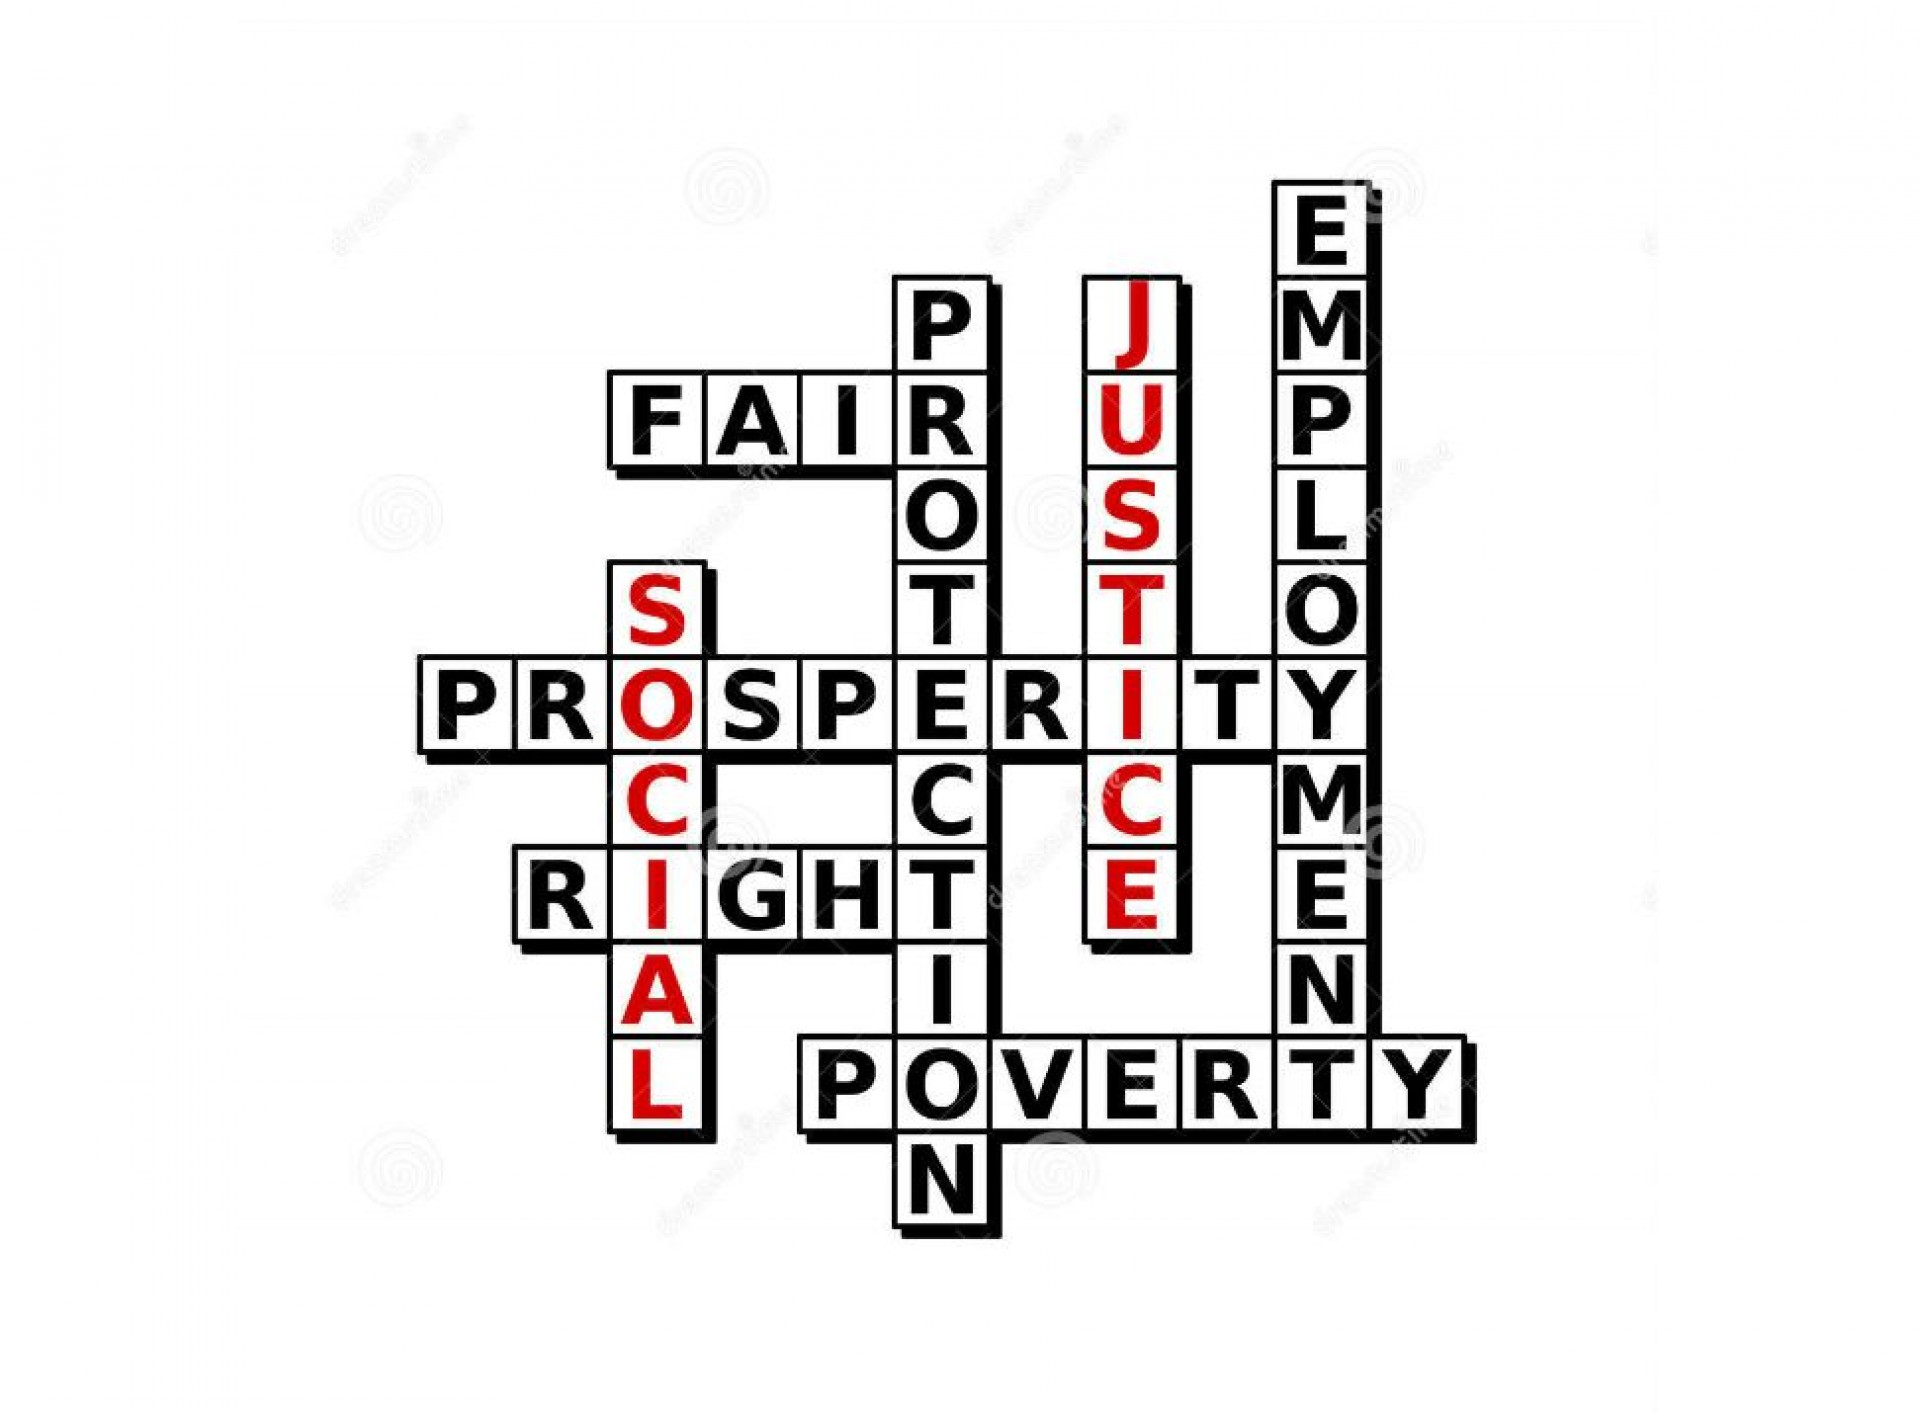 003 Surprising Prosperity Crossword Photo  Hollow Sound Of Sudden Clue Material 7 Letter1920